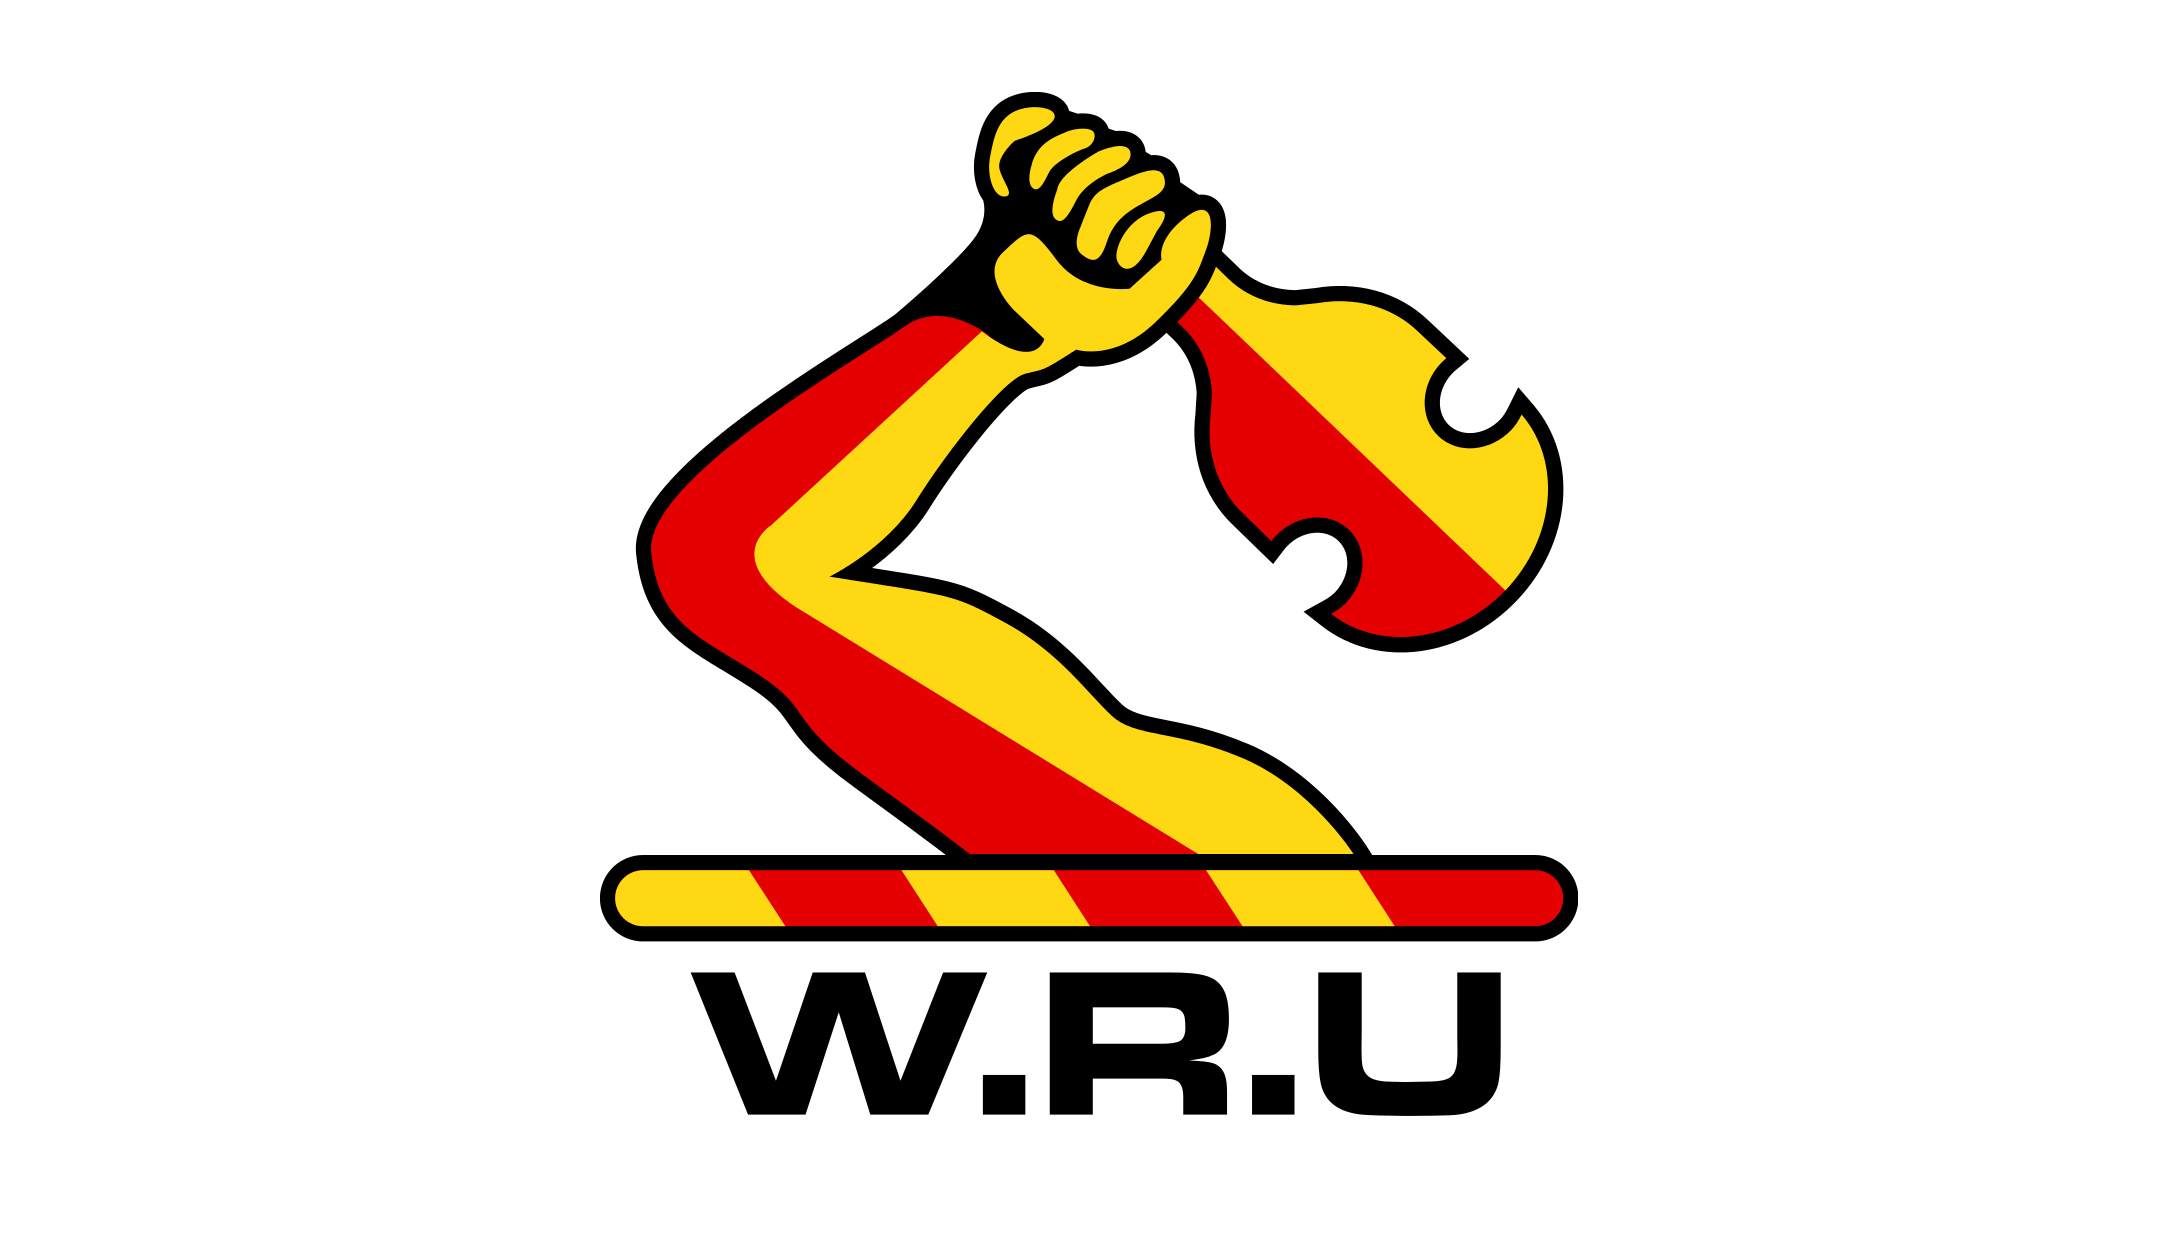 The official website of the Waikato Rugby Union - your source for all things rugby in the Waikato